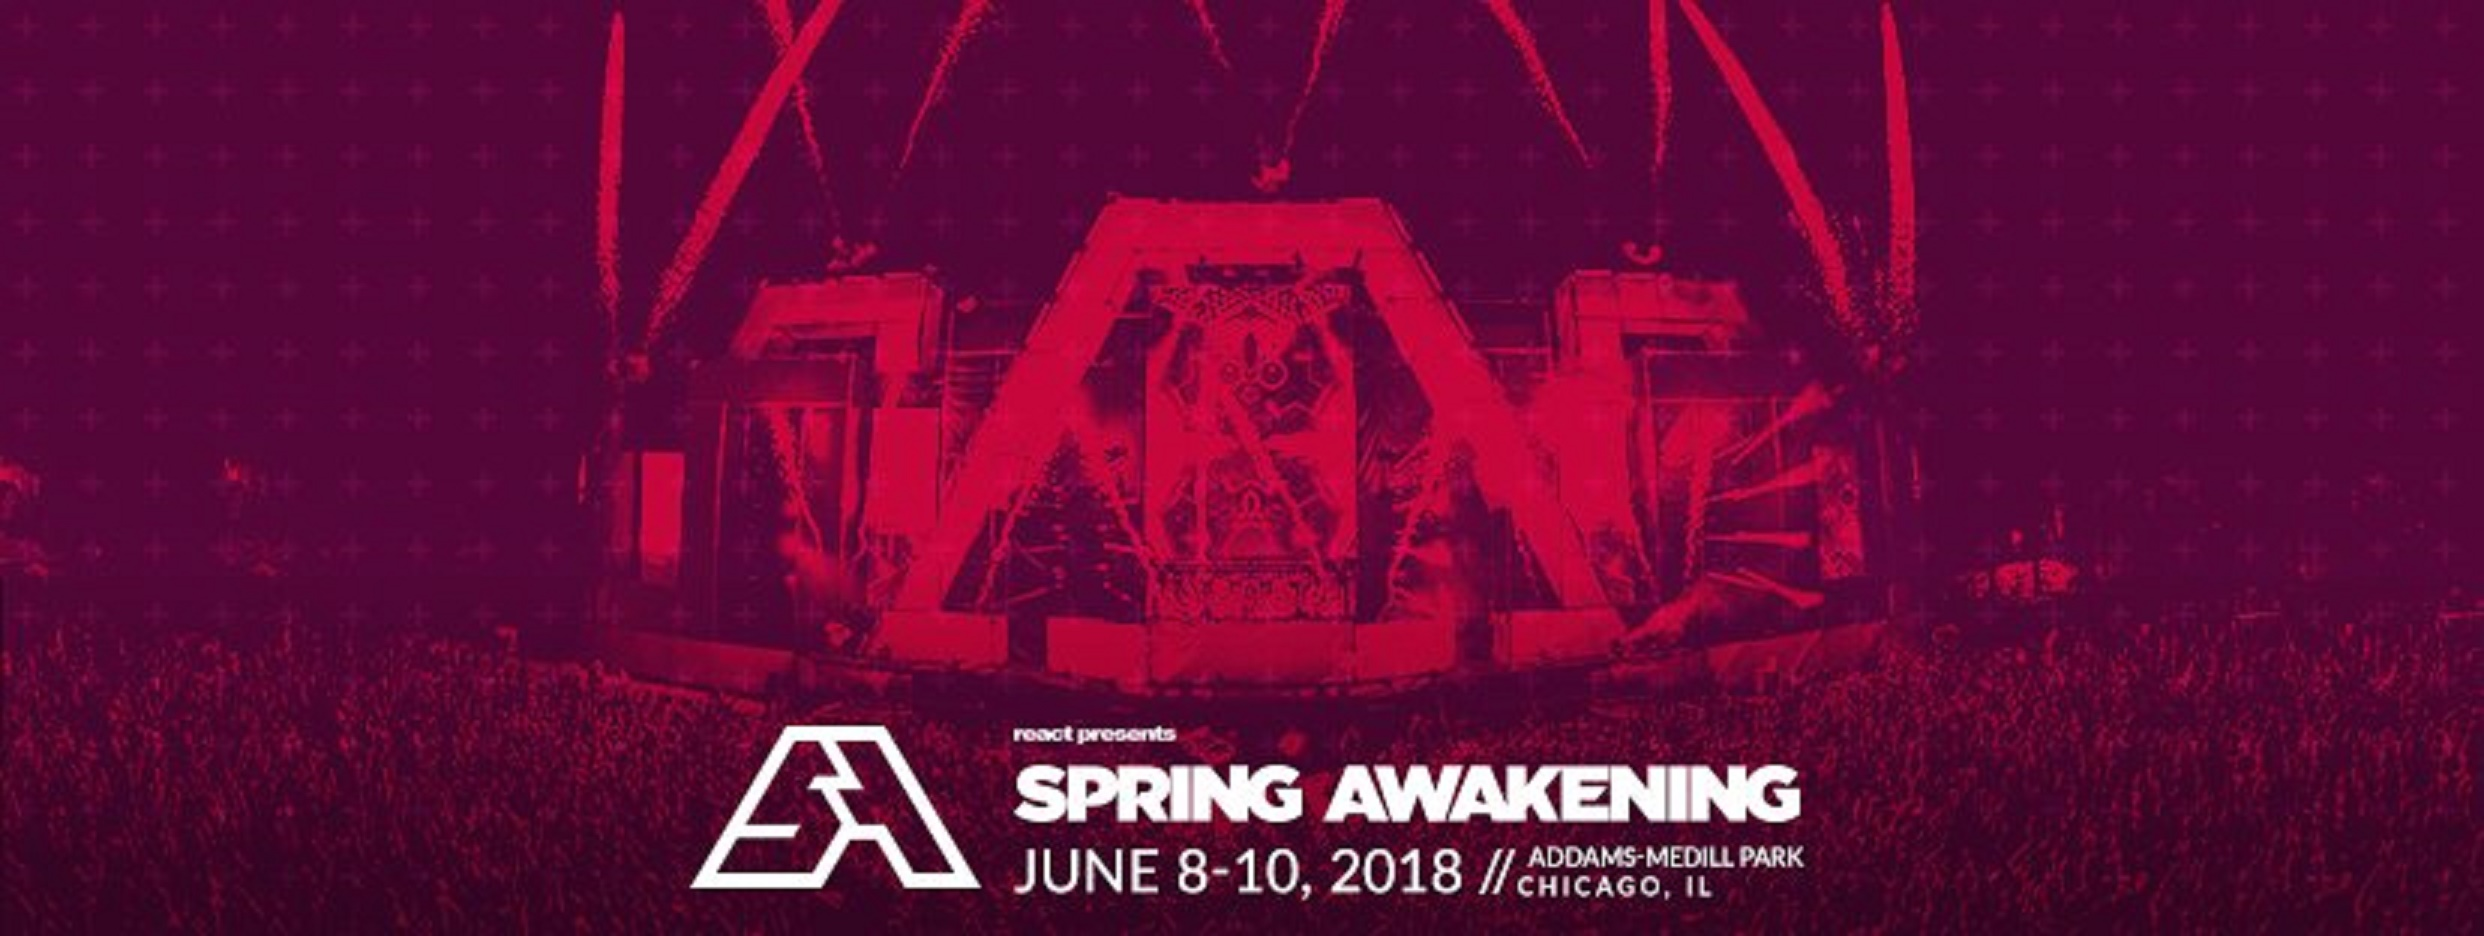 Spring Awakening Announces 2018 Dates